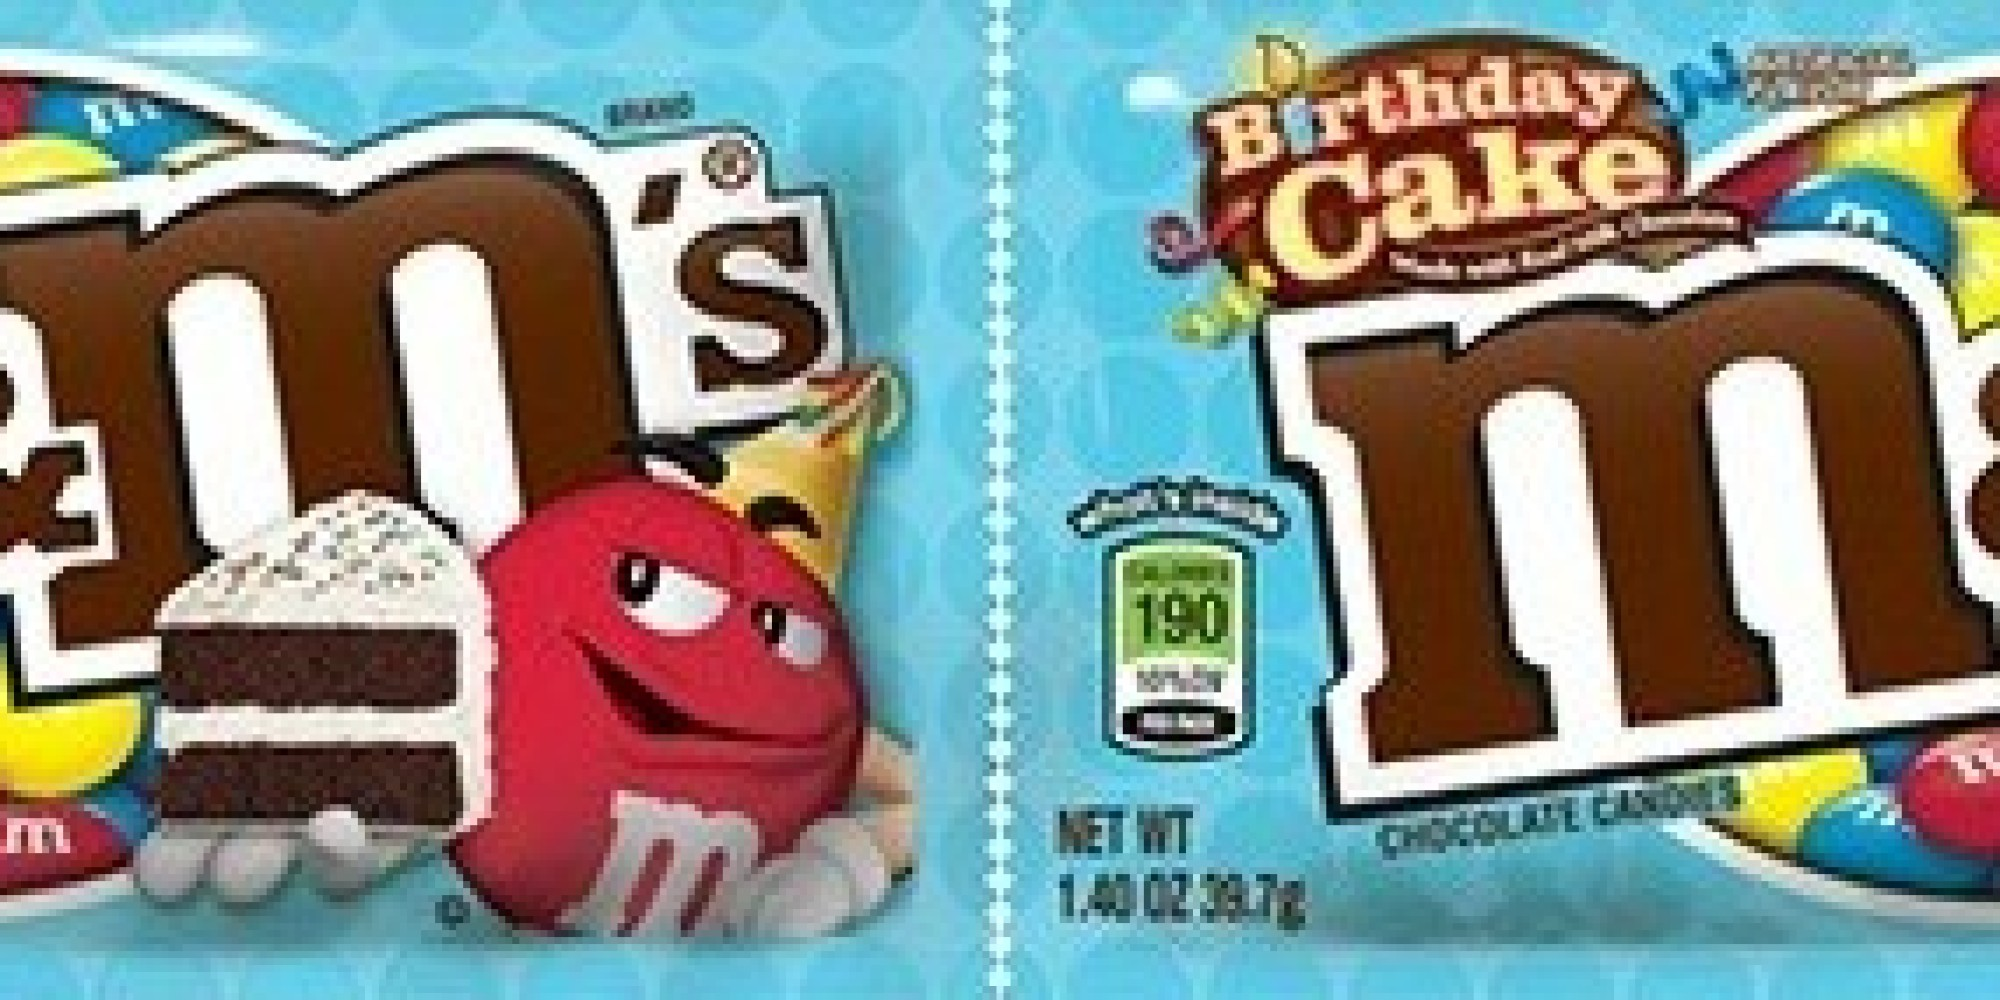 Birthday CakeFlavored MMs Are Finally A Thing HuffPost - M and ms birthday cake